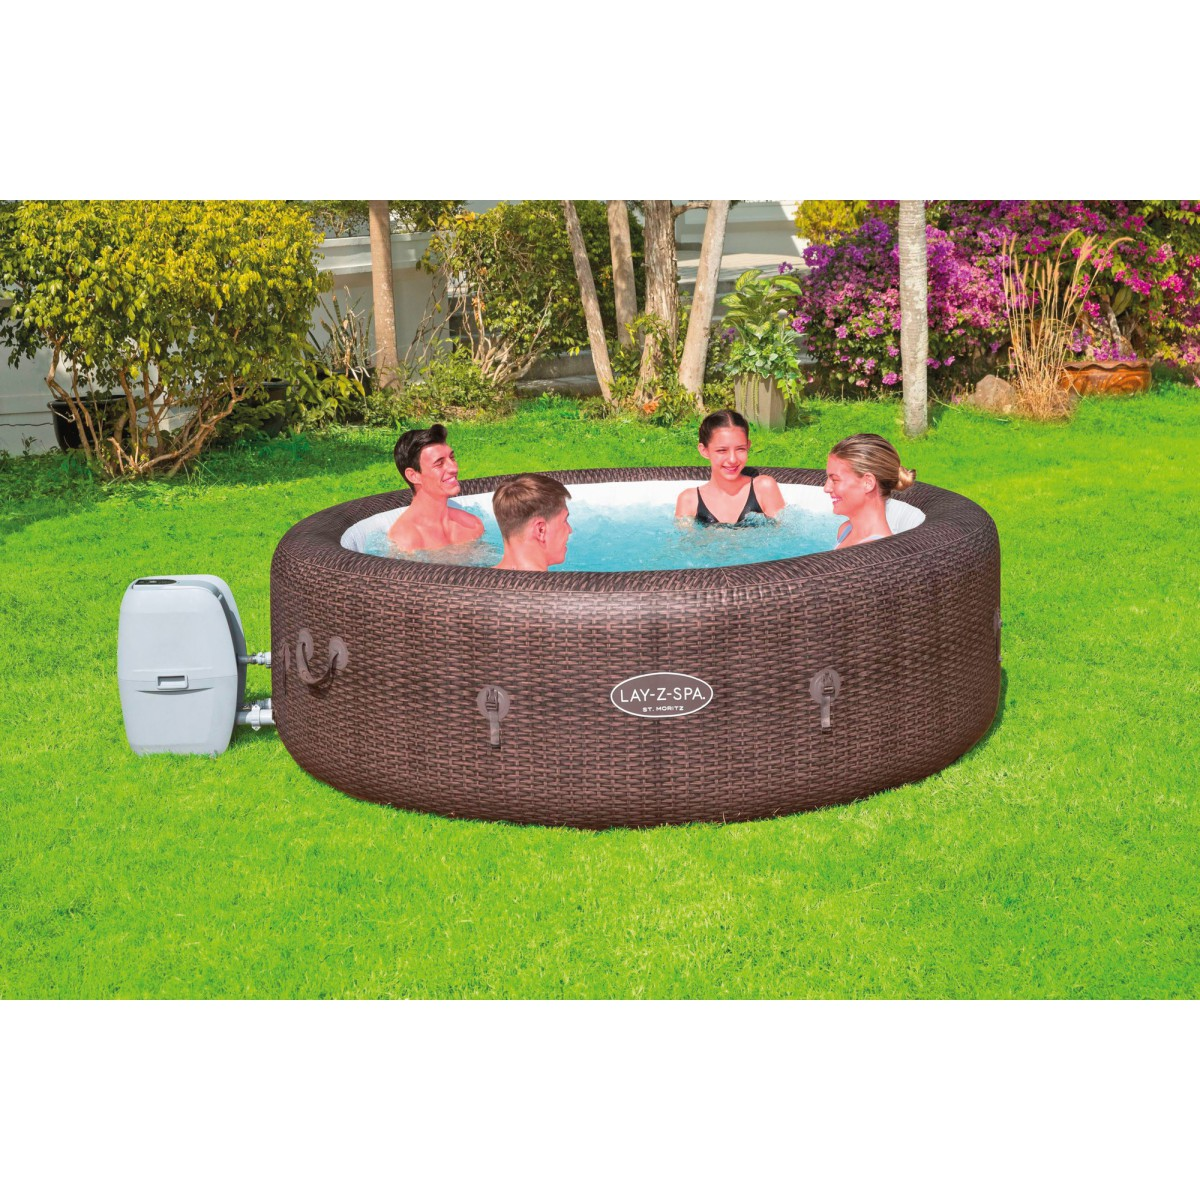 Spa gonflable rond Lay-Z-Spa® St Moritz Bestway - 5 / 7 places - 216 x 71 cm